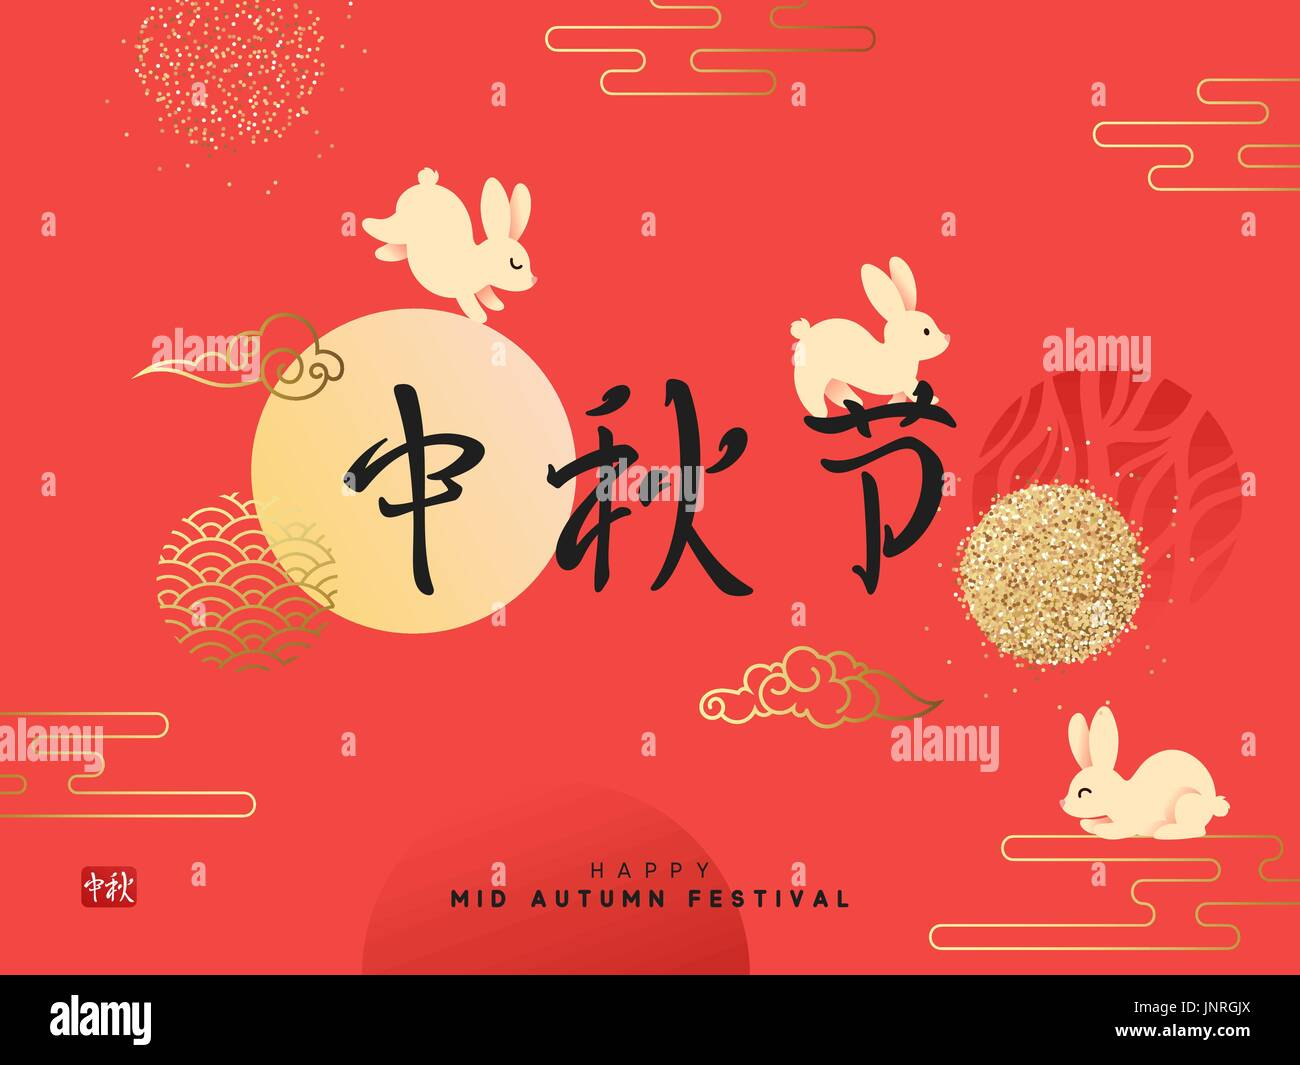 Greeting card happy rabbit with moon chinese festival mid autumn greeting card happy rabbit with moon chinese festival mid autumn m4hsunfo